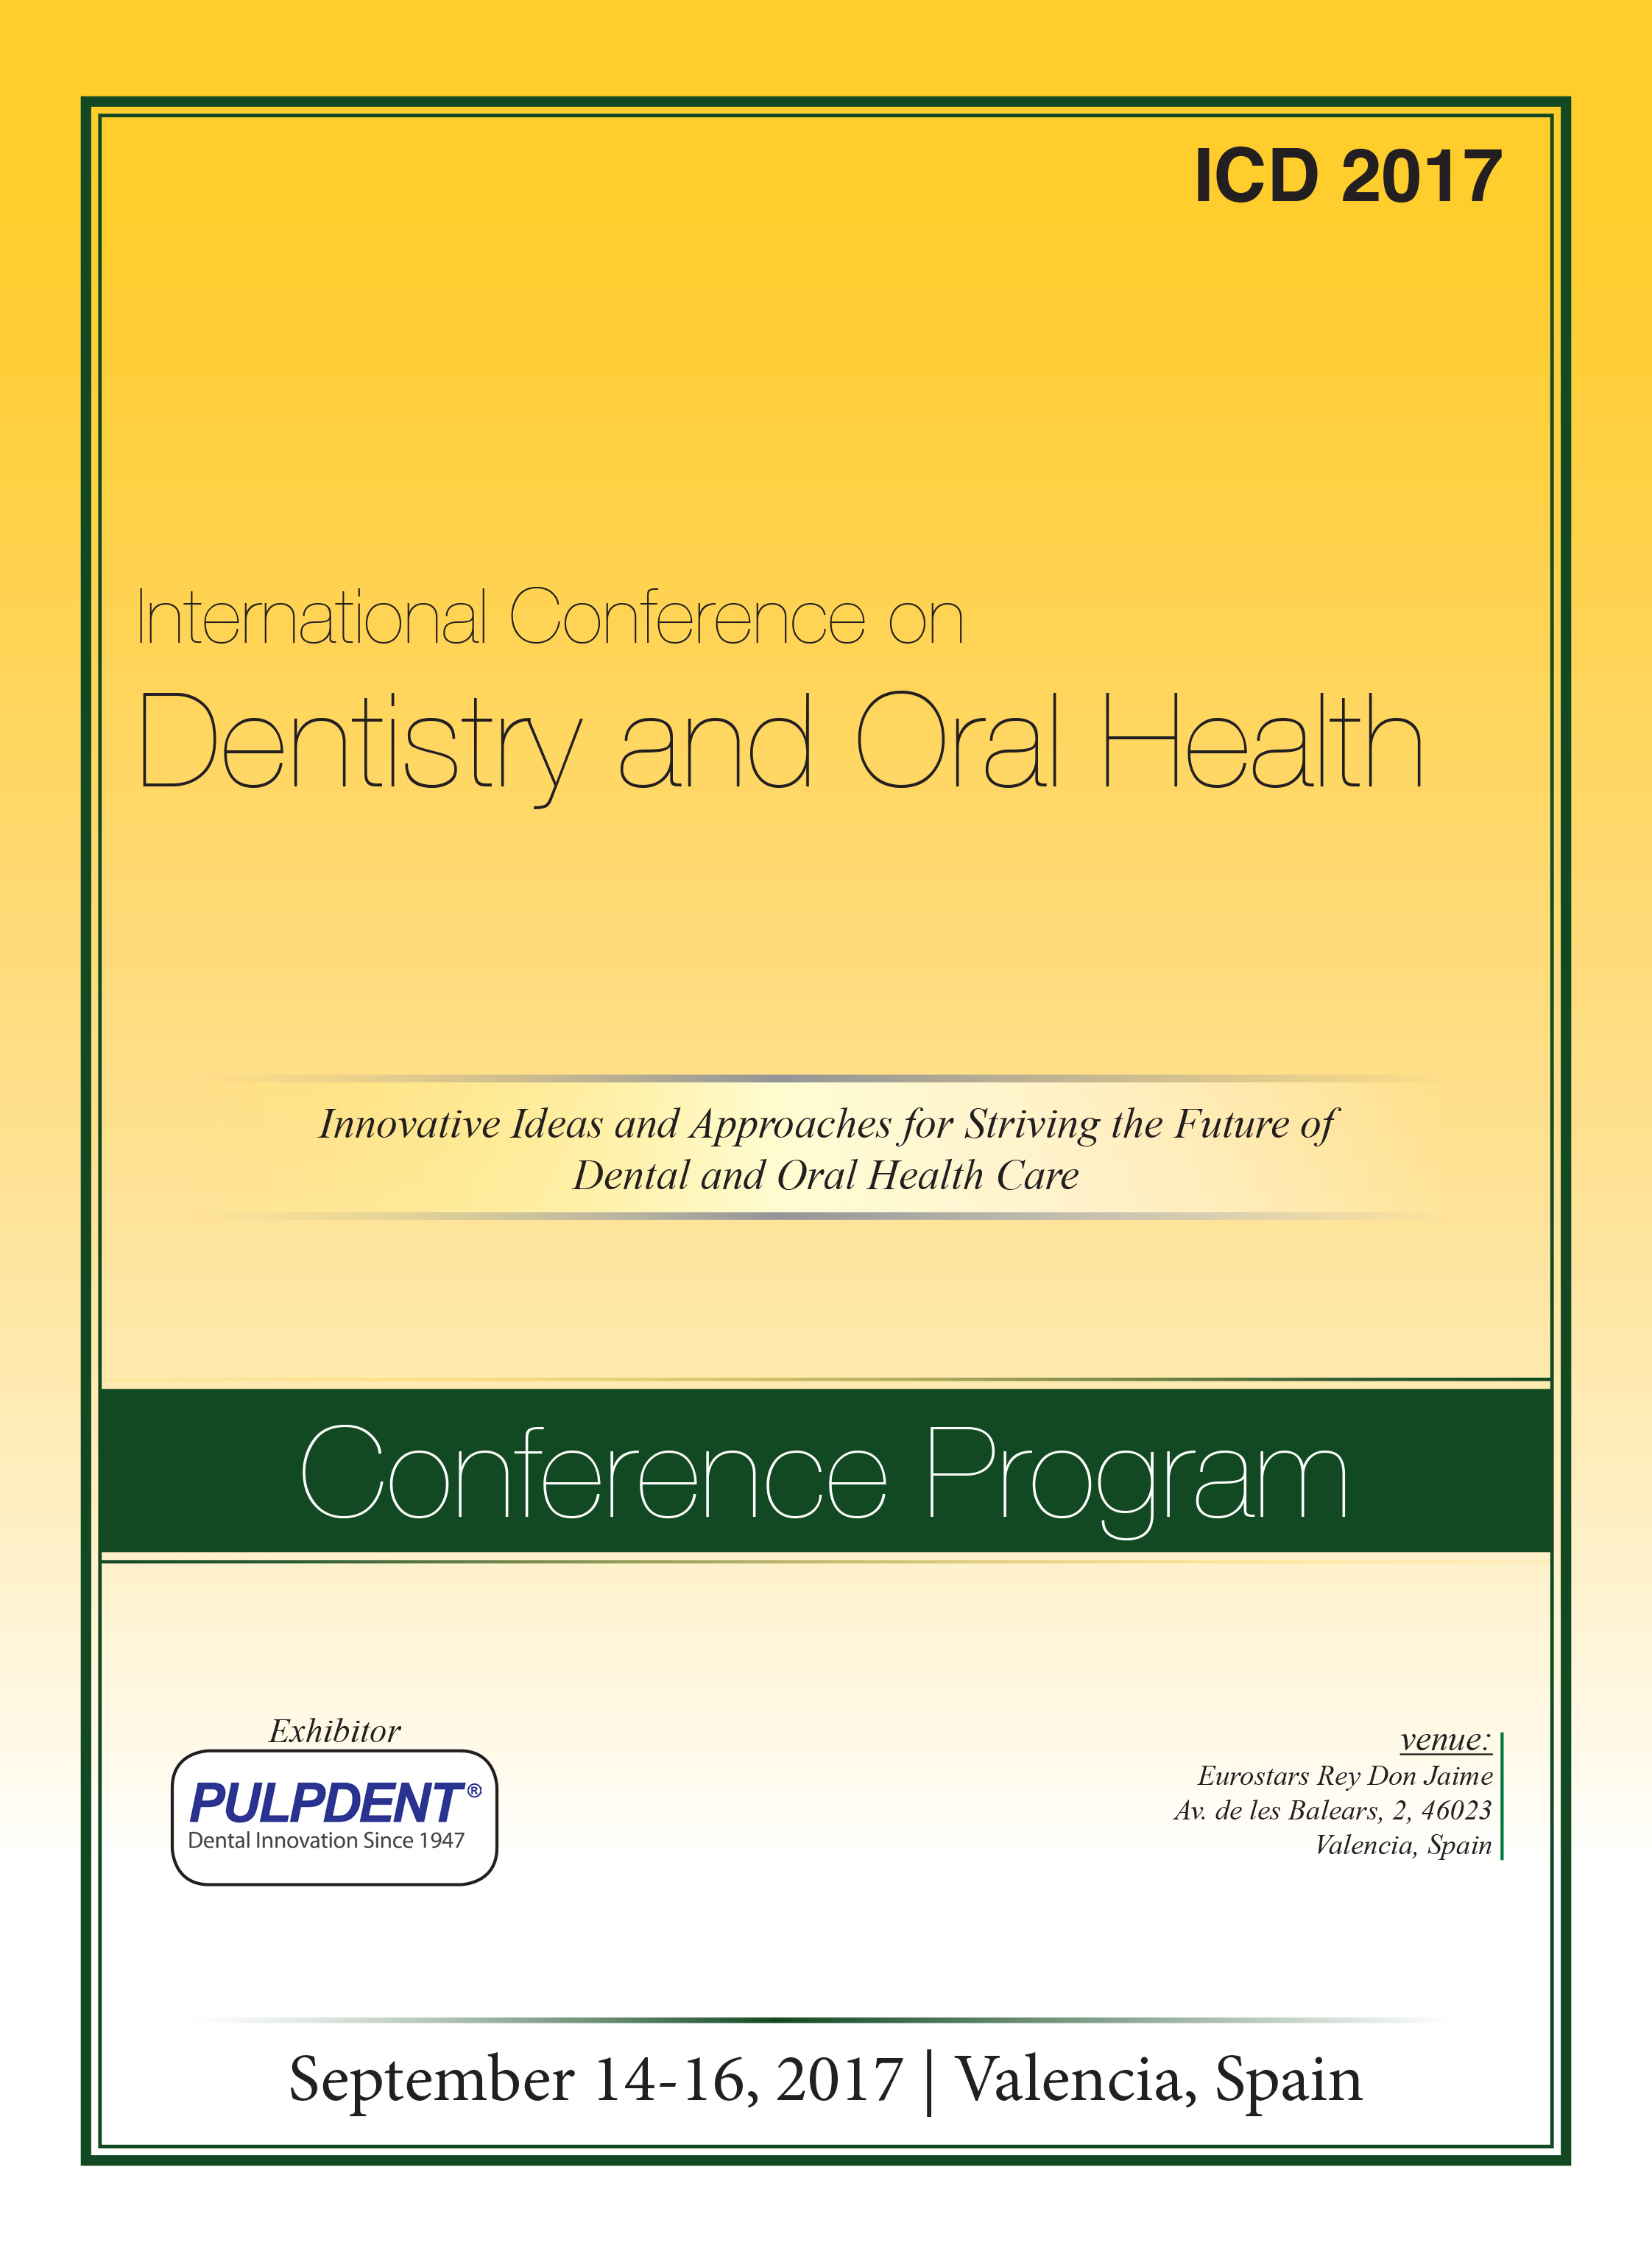 International Conference on Dentistry and Oral Health Program